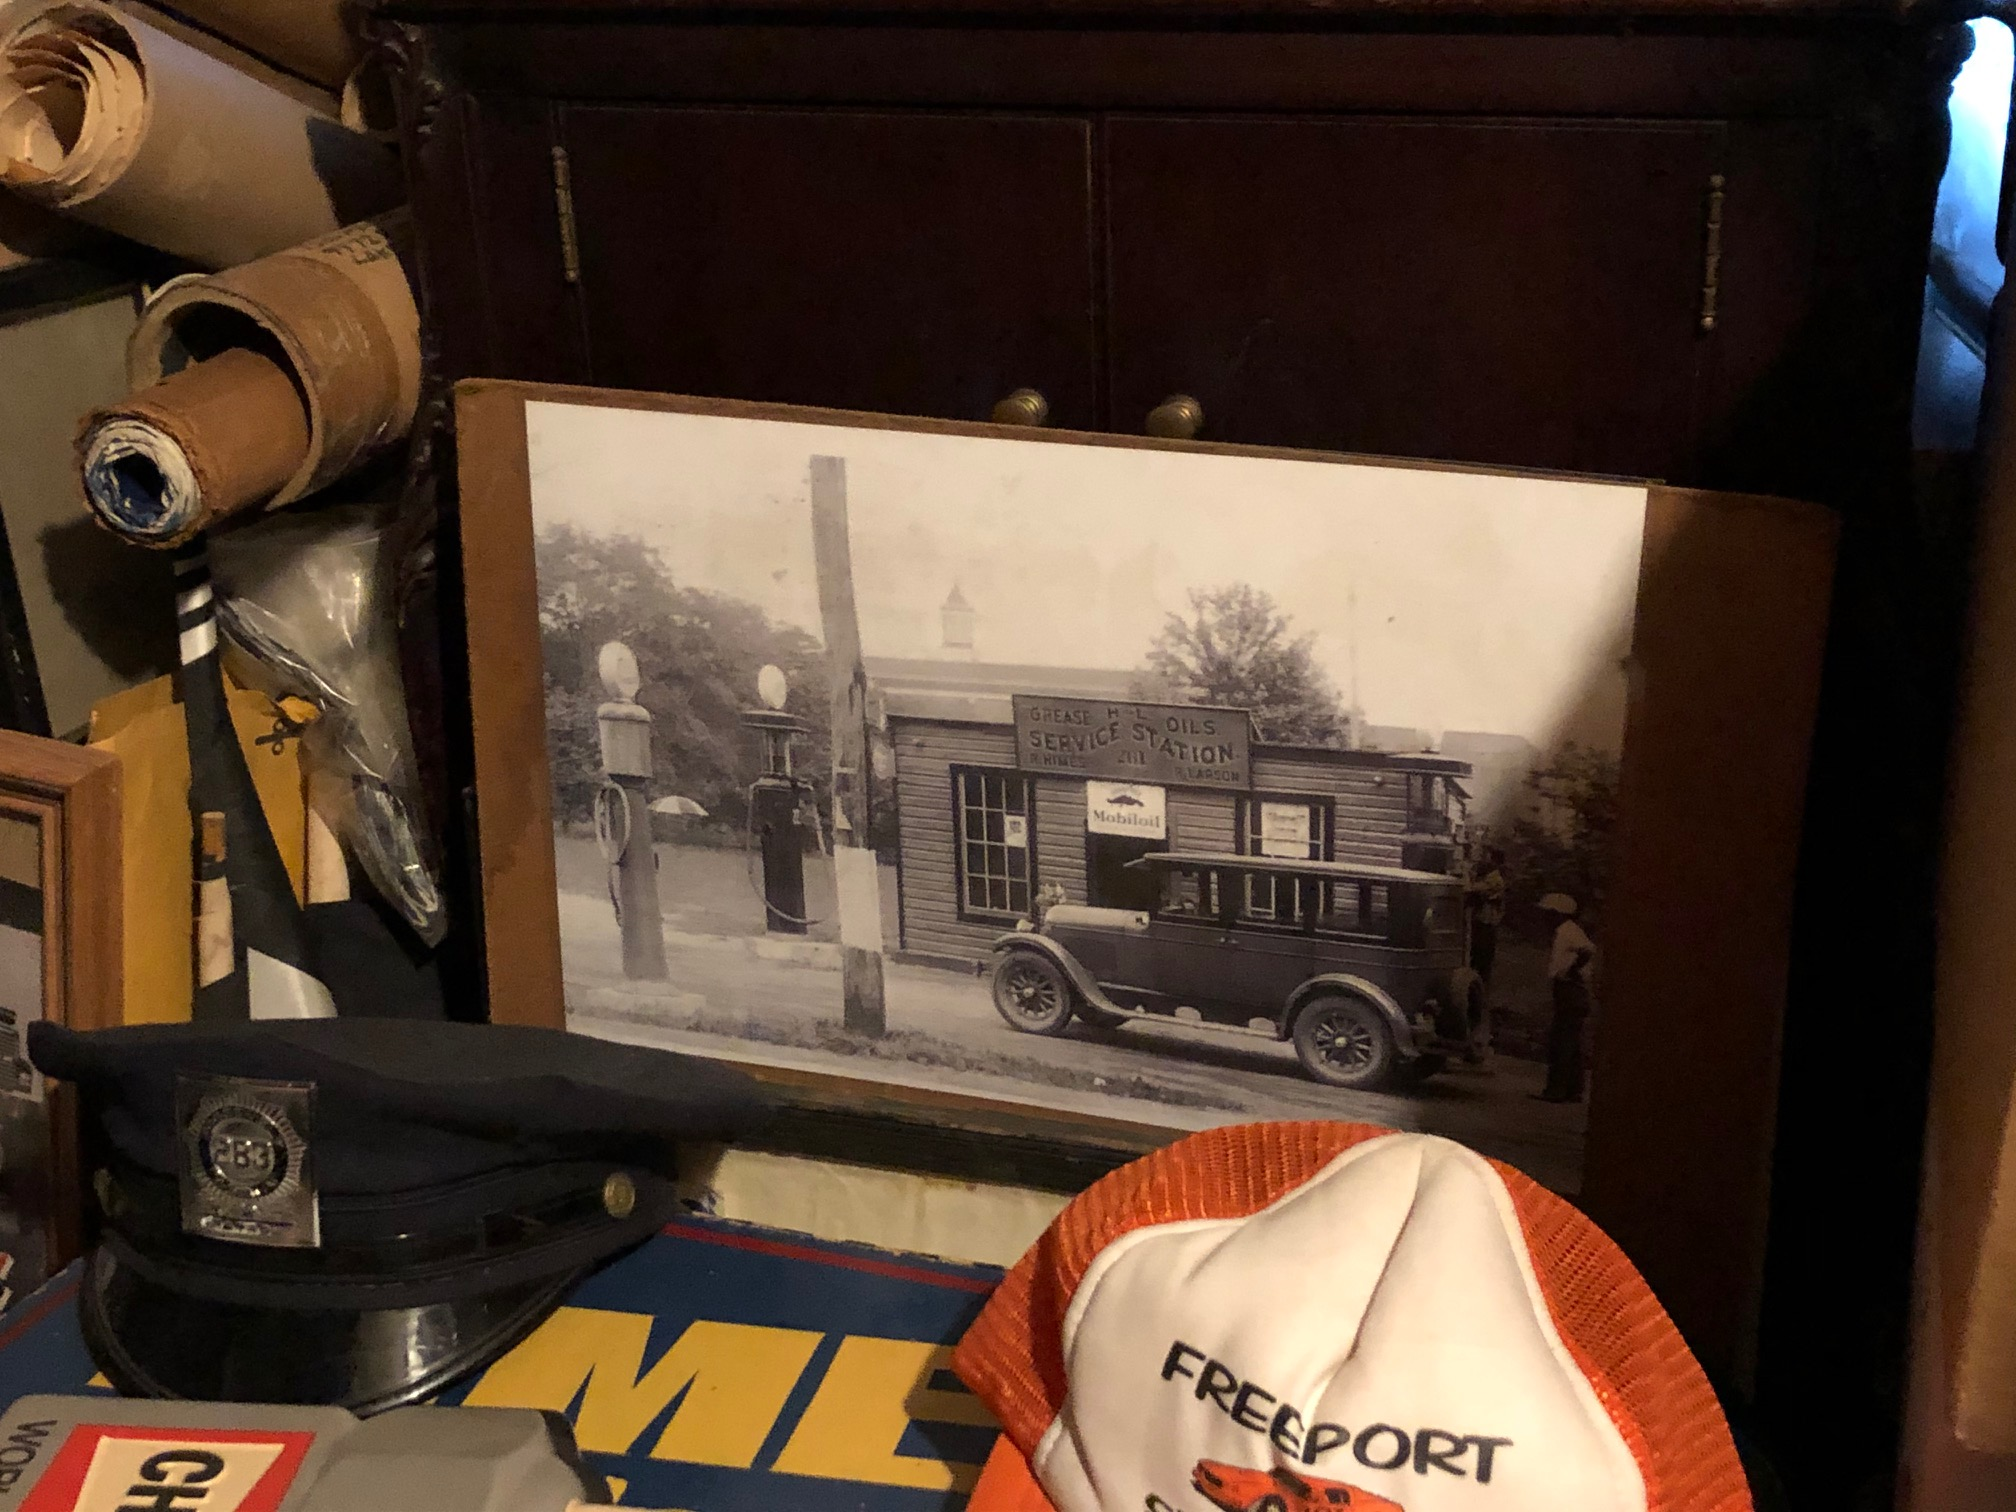 Himes Museum service station historical image